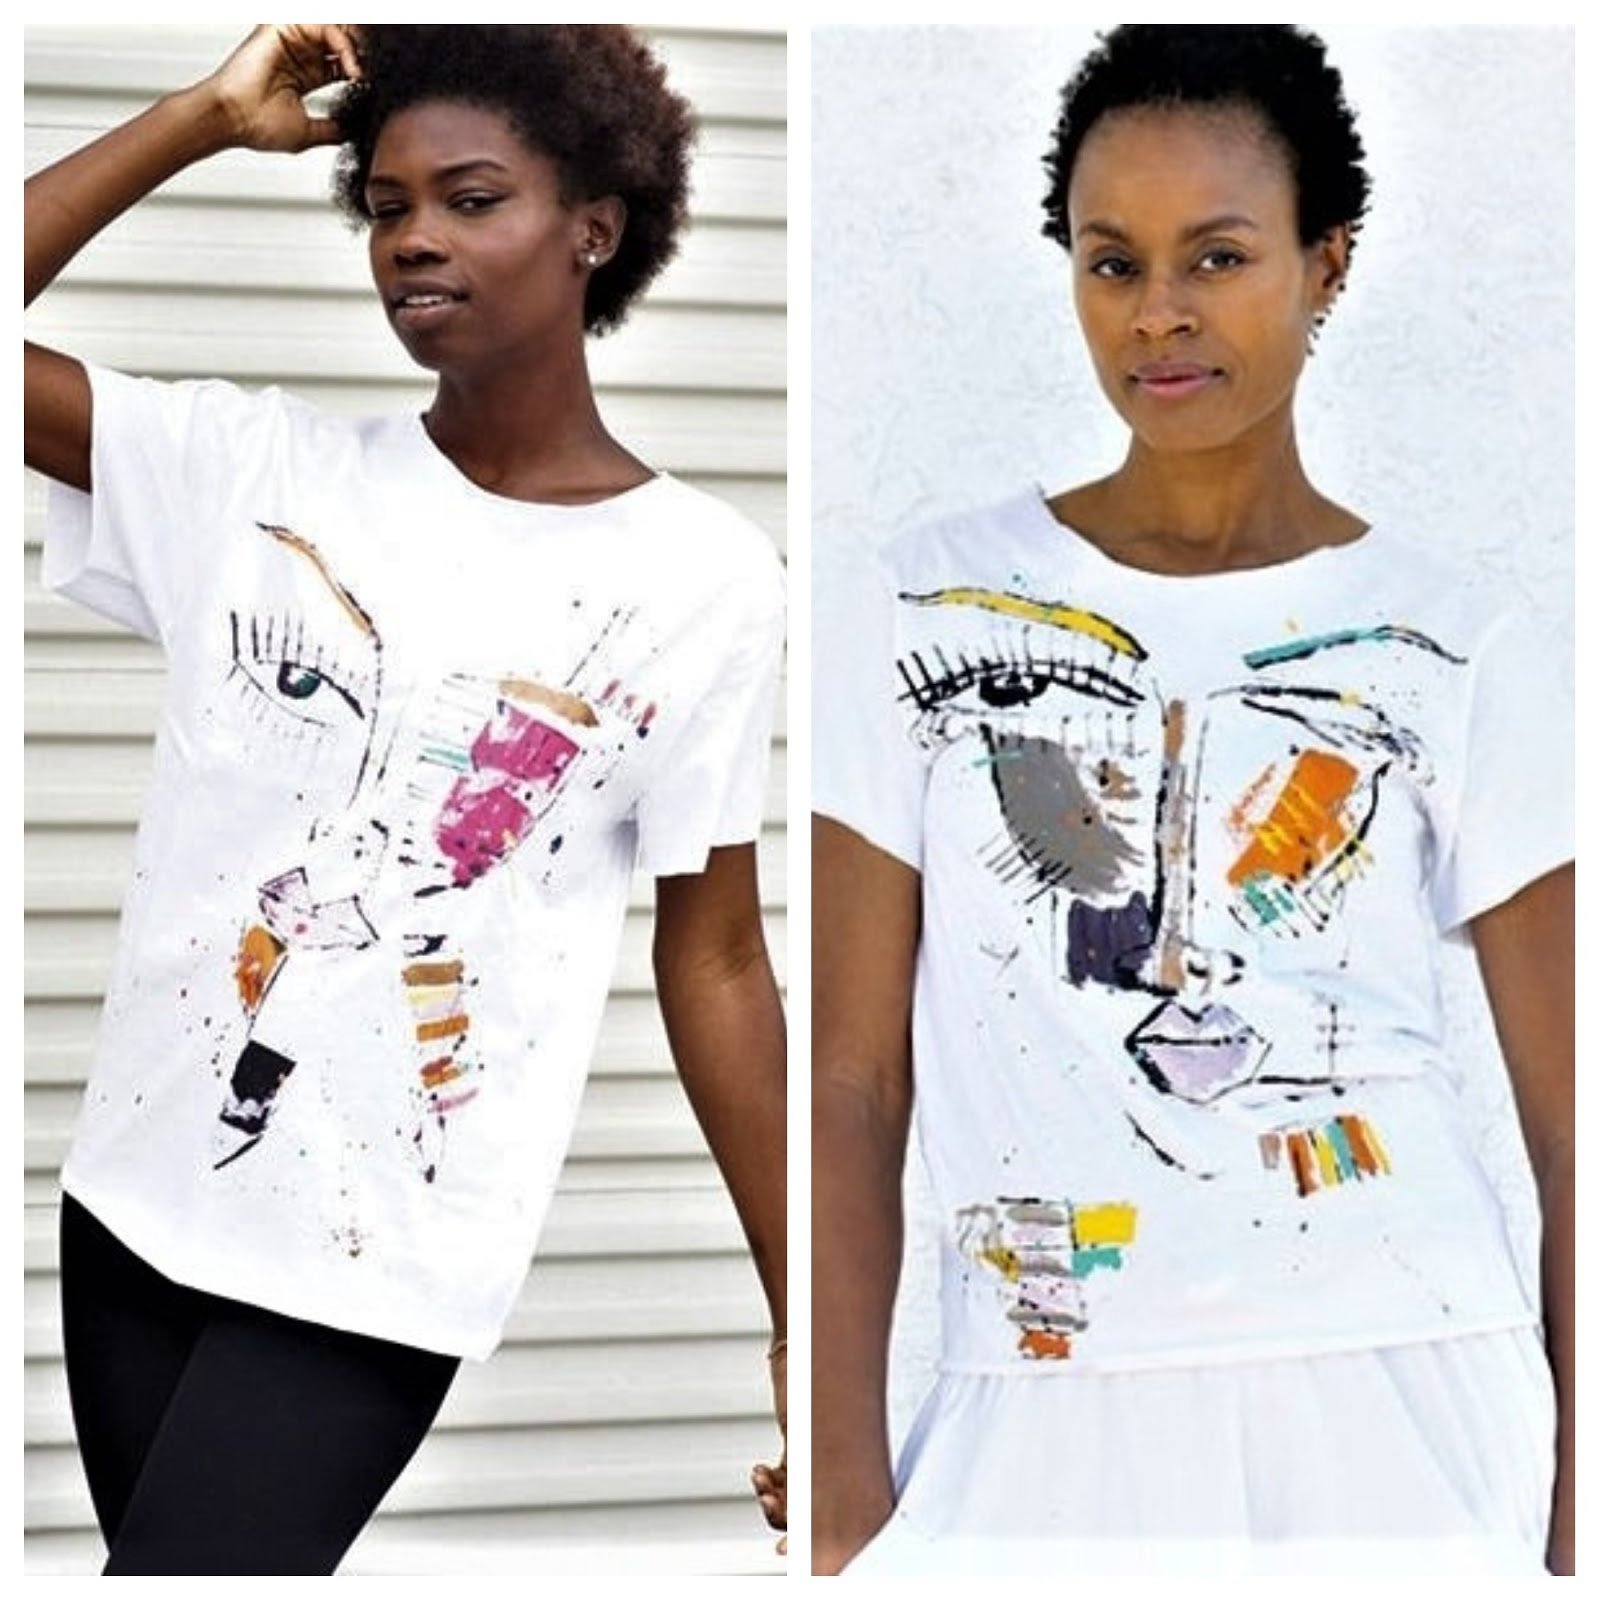 Comment On All Articles For A Chance To Win A Miles Regis Collection Painted Tee!